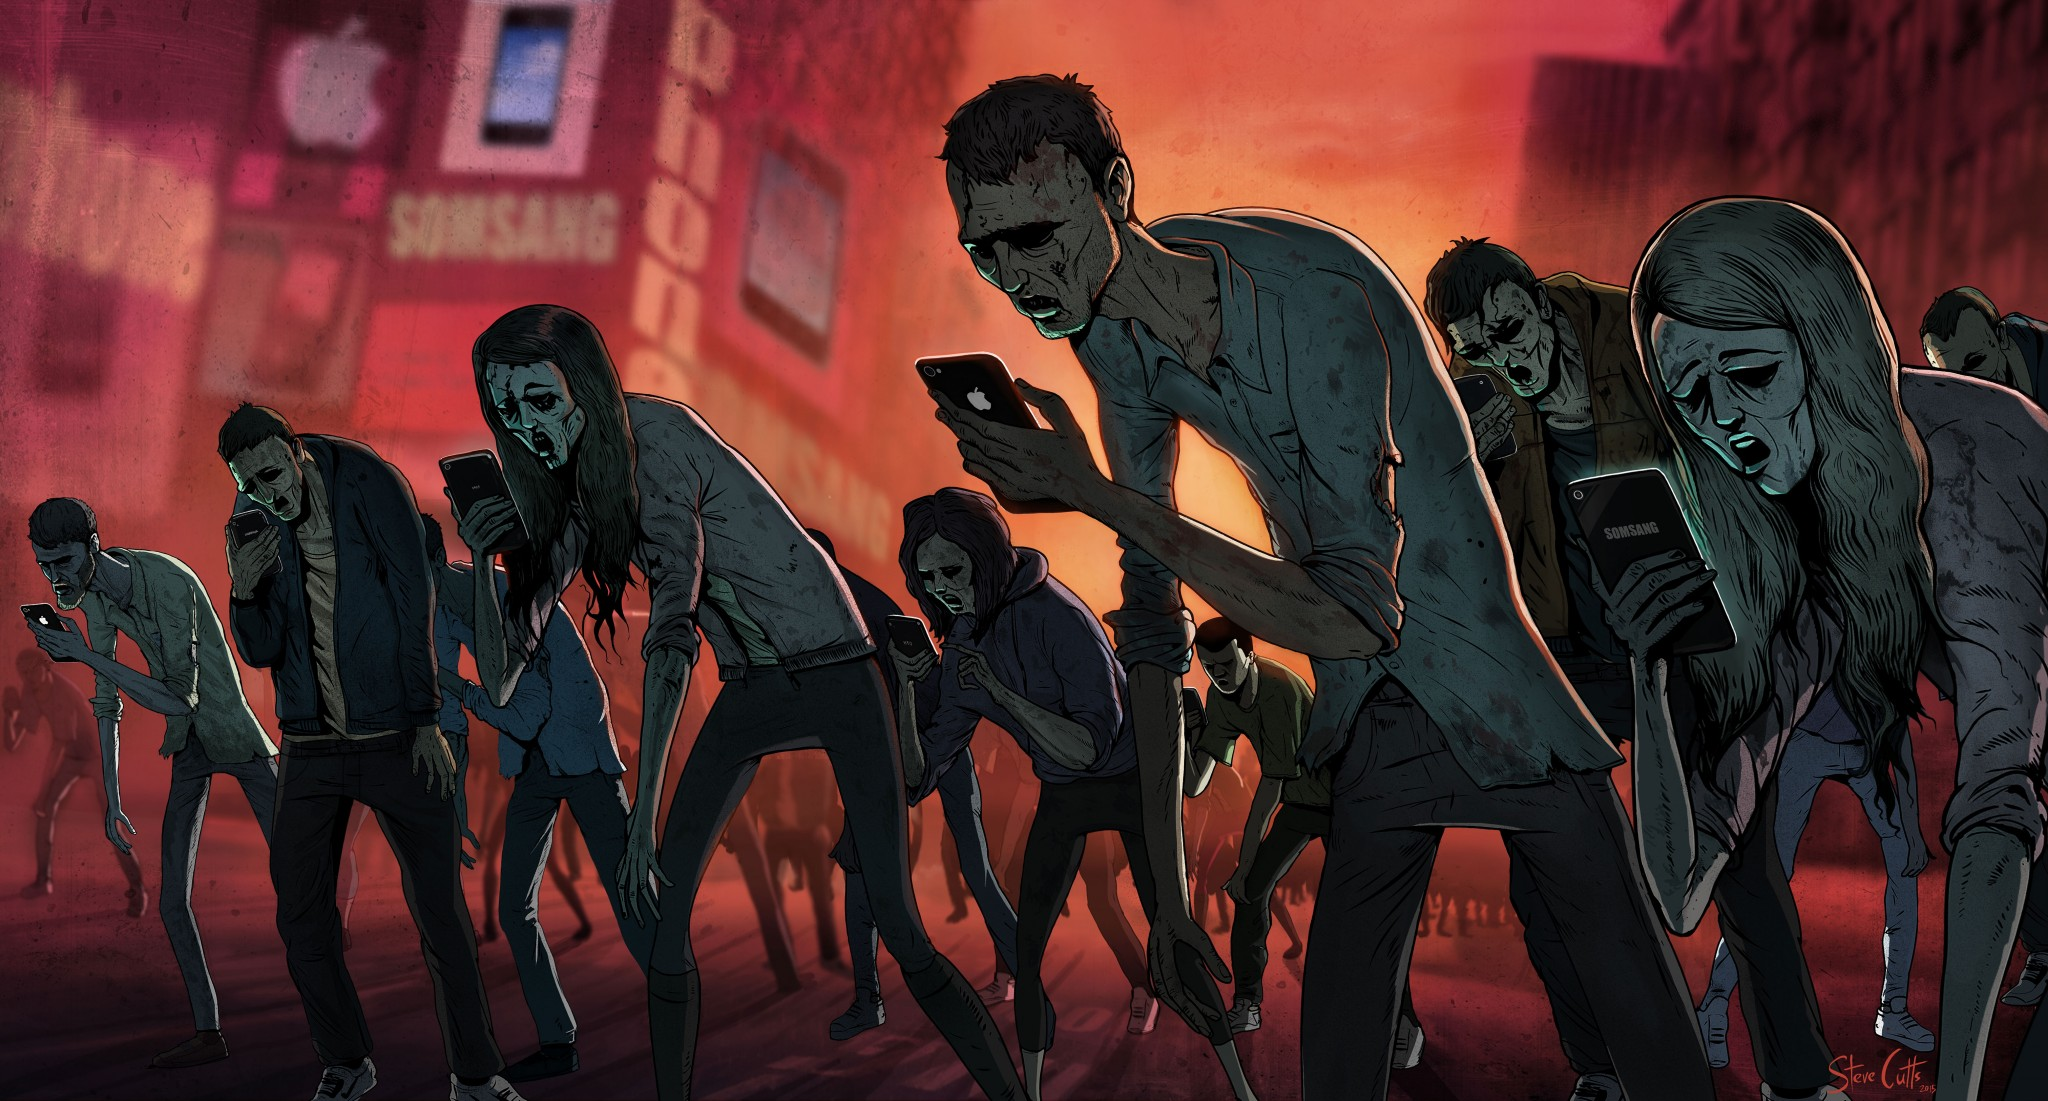 Steve Cutts Loaded illustration The Texting Dead